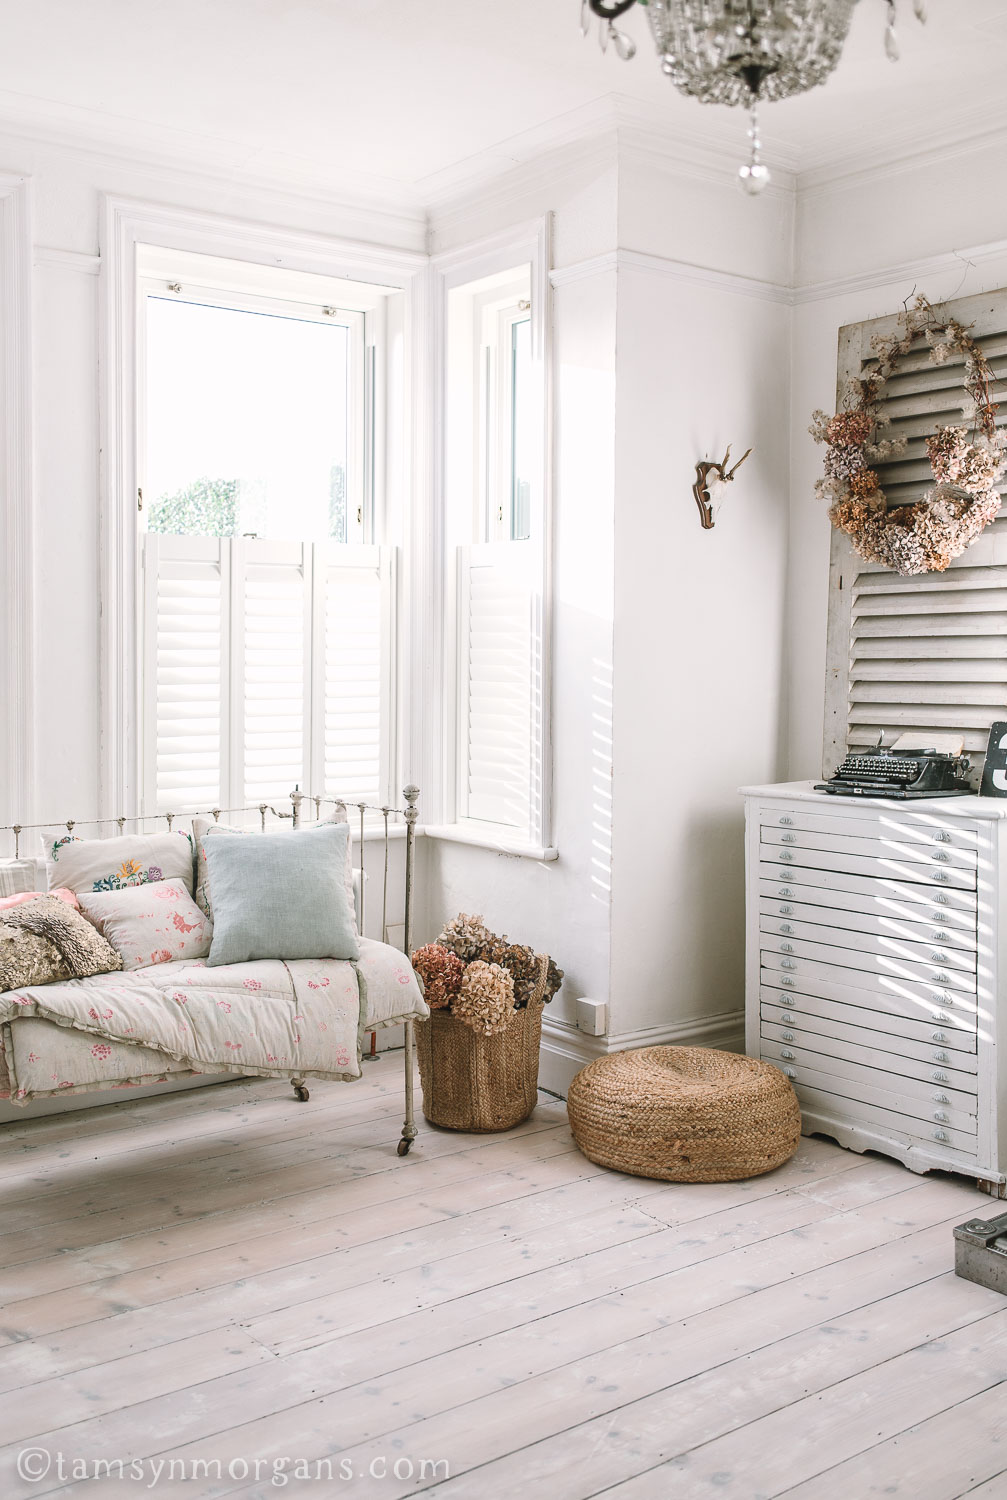 French daybed in living room